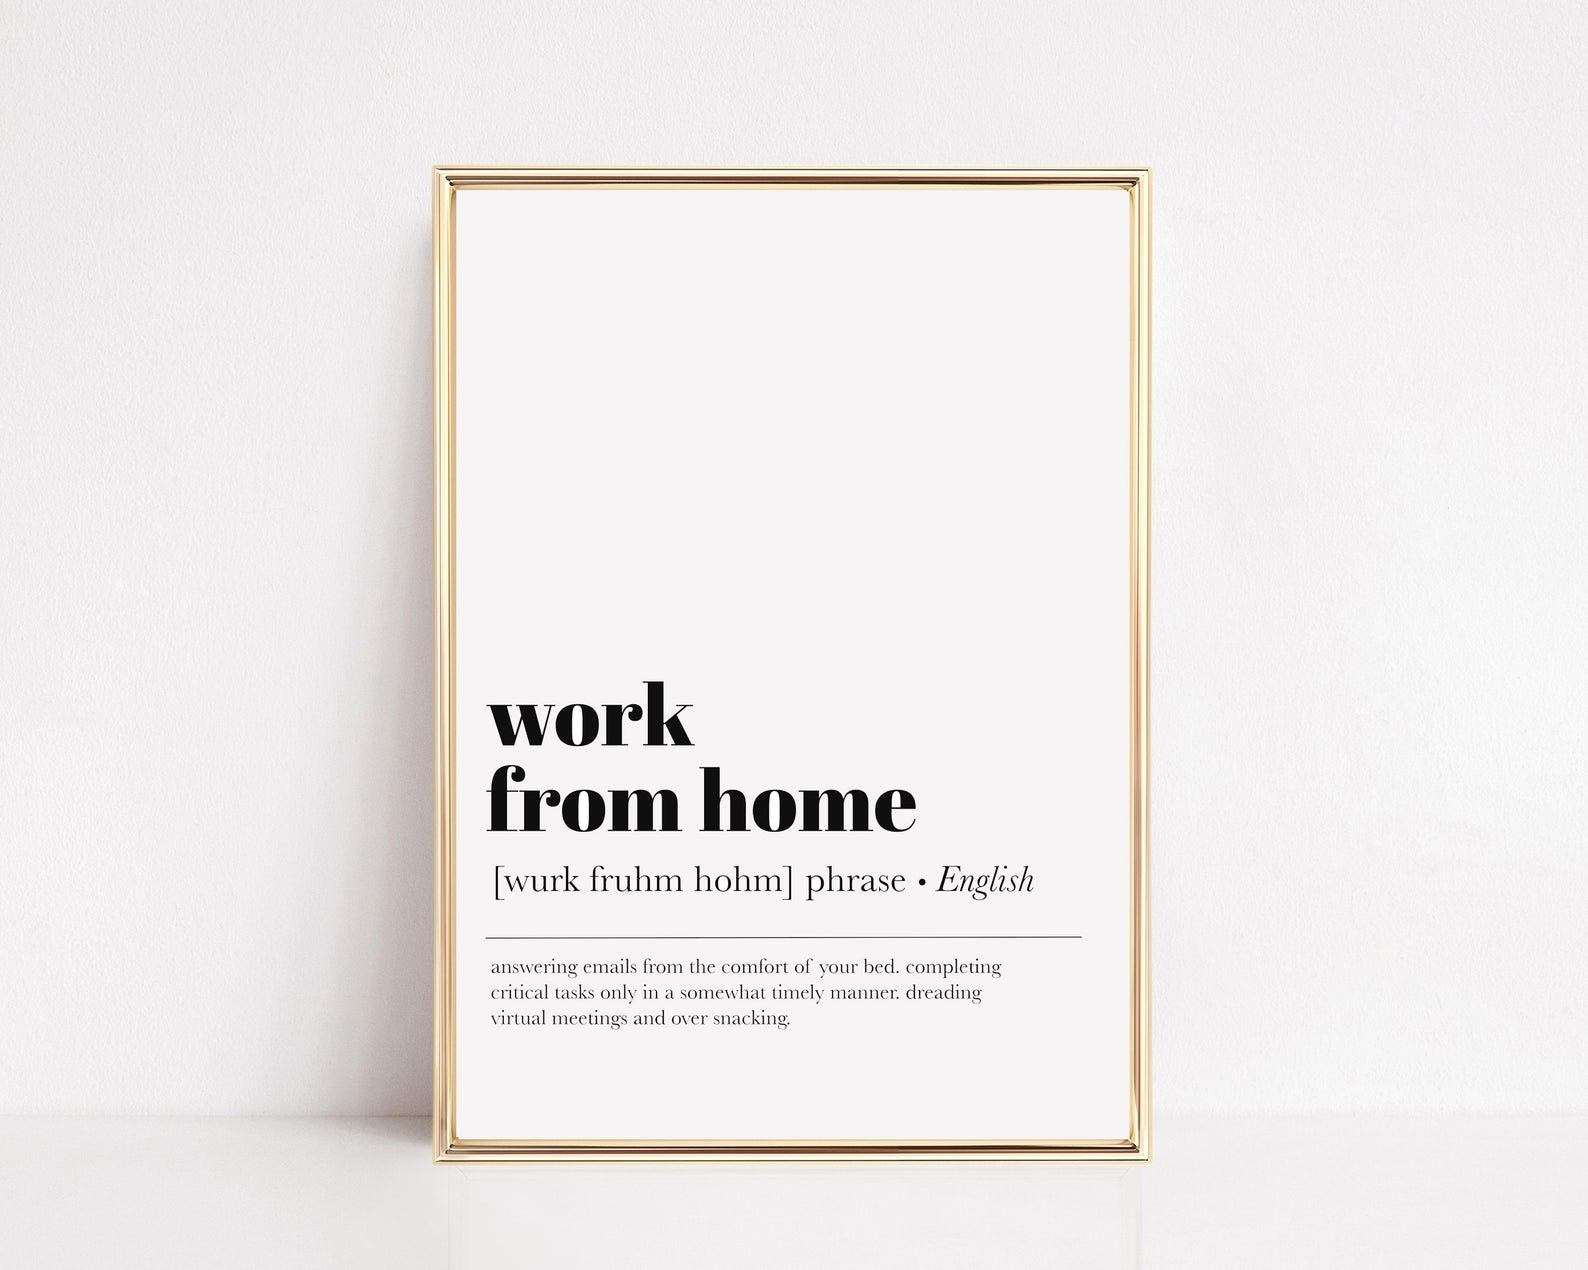 """A minimalist print that says """"work from home"""" with the definition: """"answering emails from the comfort of your bed, completing critical tasks only in a somewhat timely manner, dreading virtual meetings and over snacking"""""""